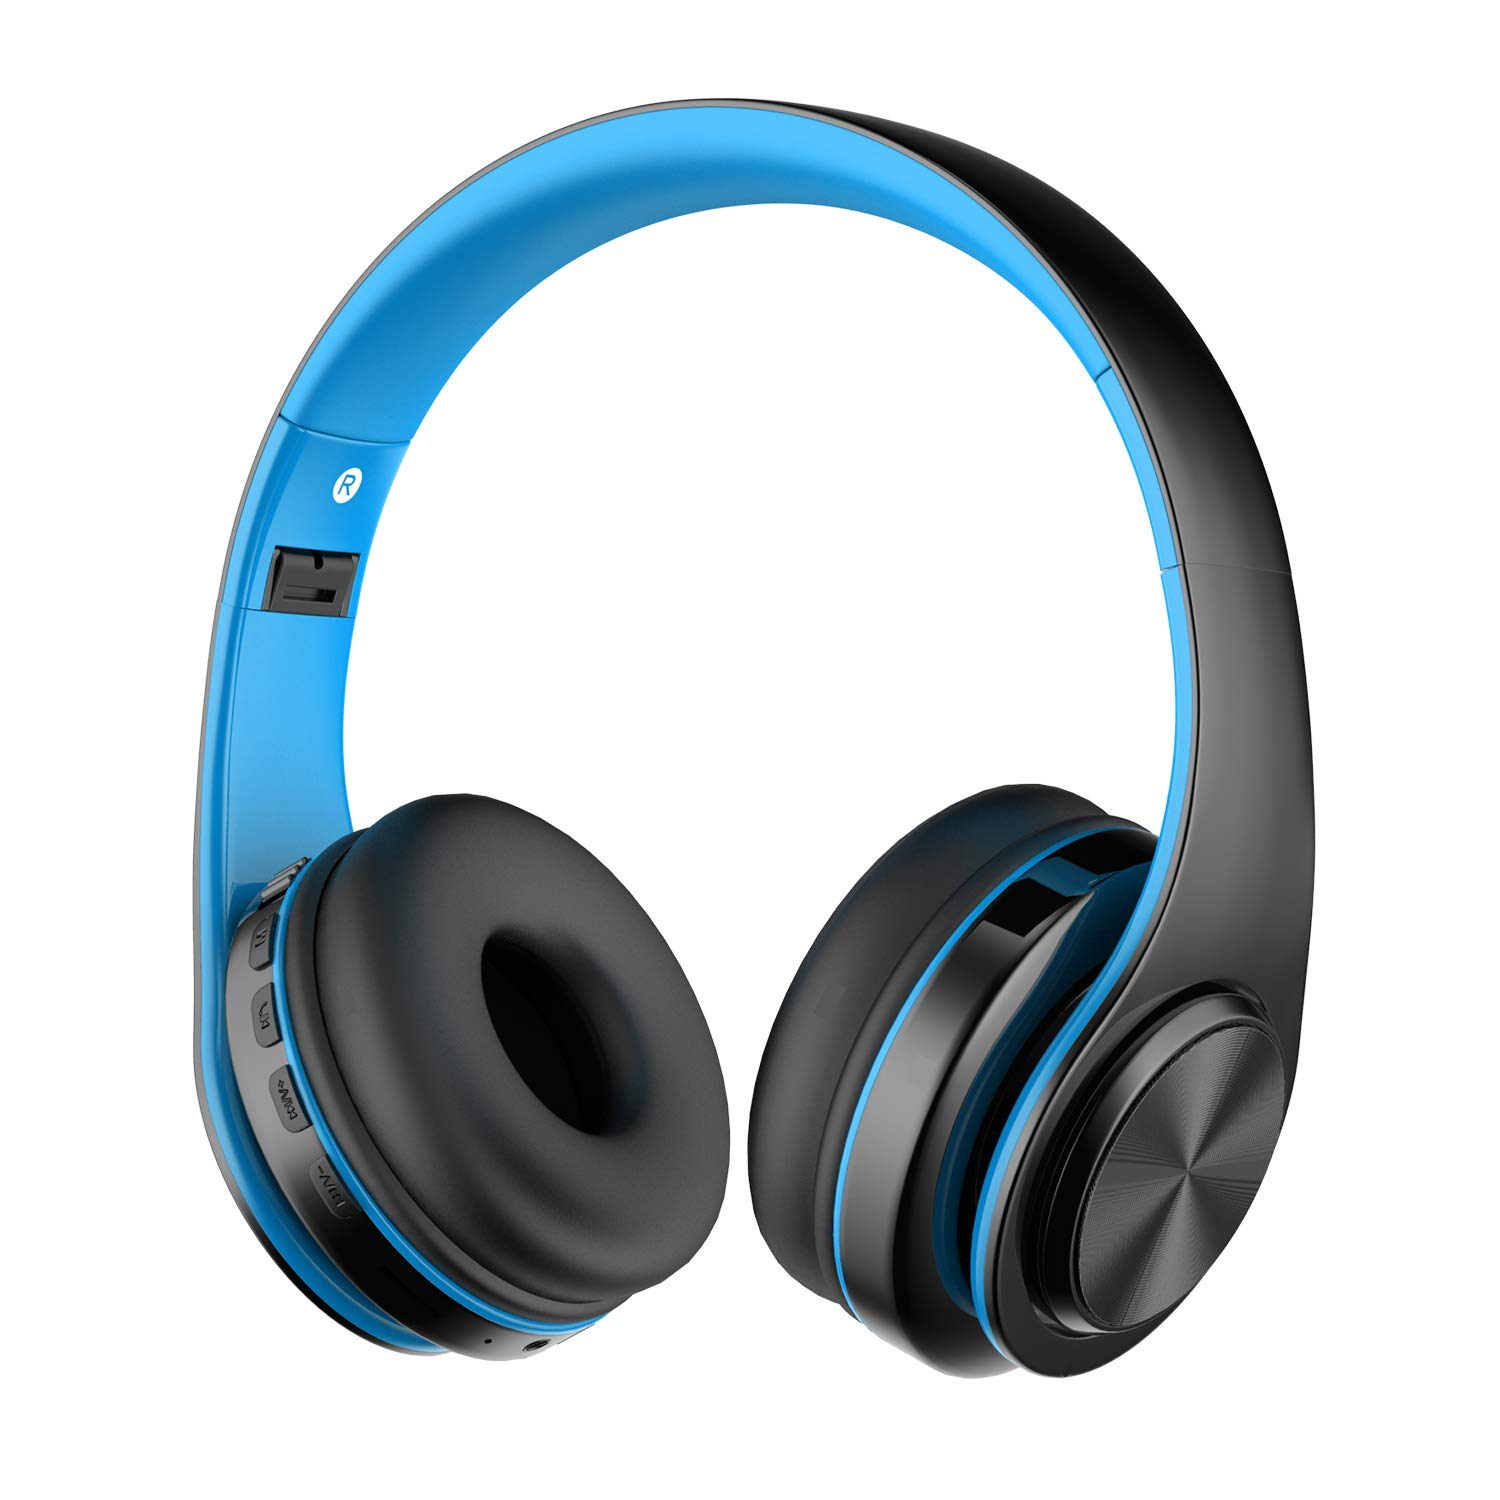 Alitoo Wireless Headphones,Bluetooth Foldable Headphones with Microphone,Over Ear Stereo Headsets Compatible with Smartphones,Tablets,PC, Laptops,Smart TV (Black&Blue)